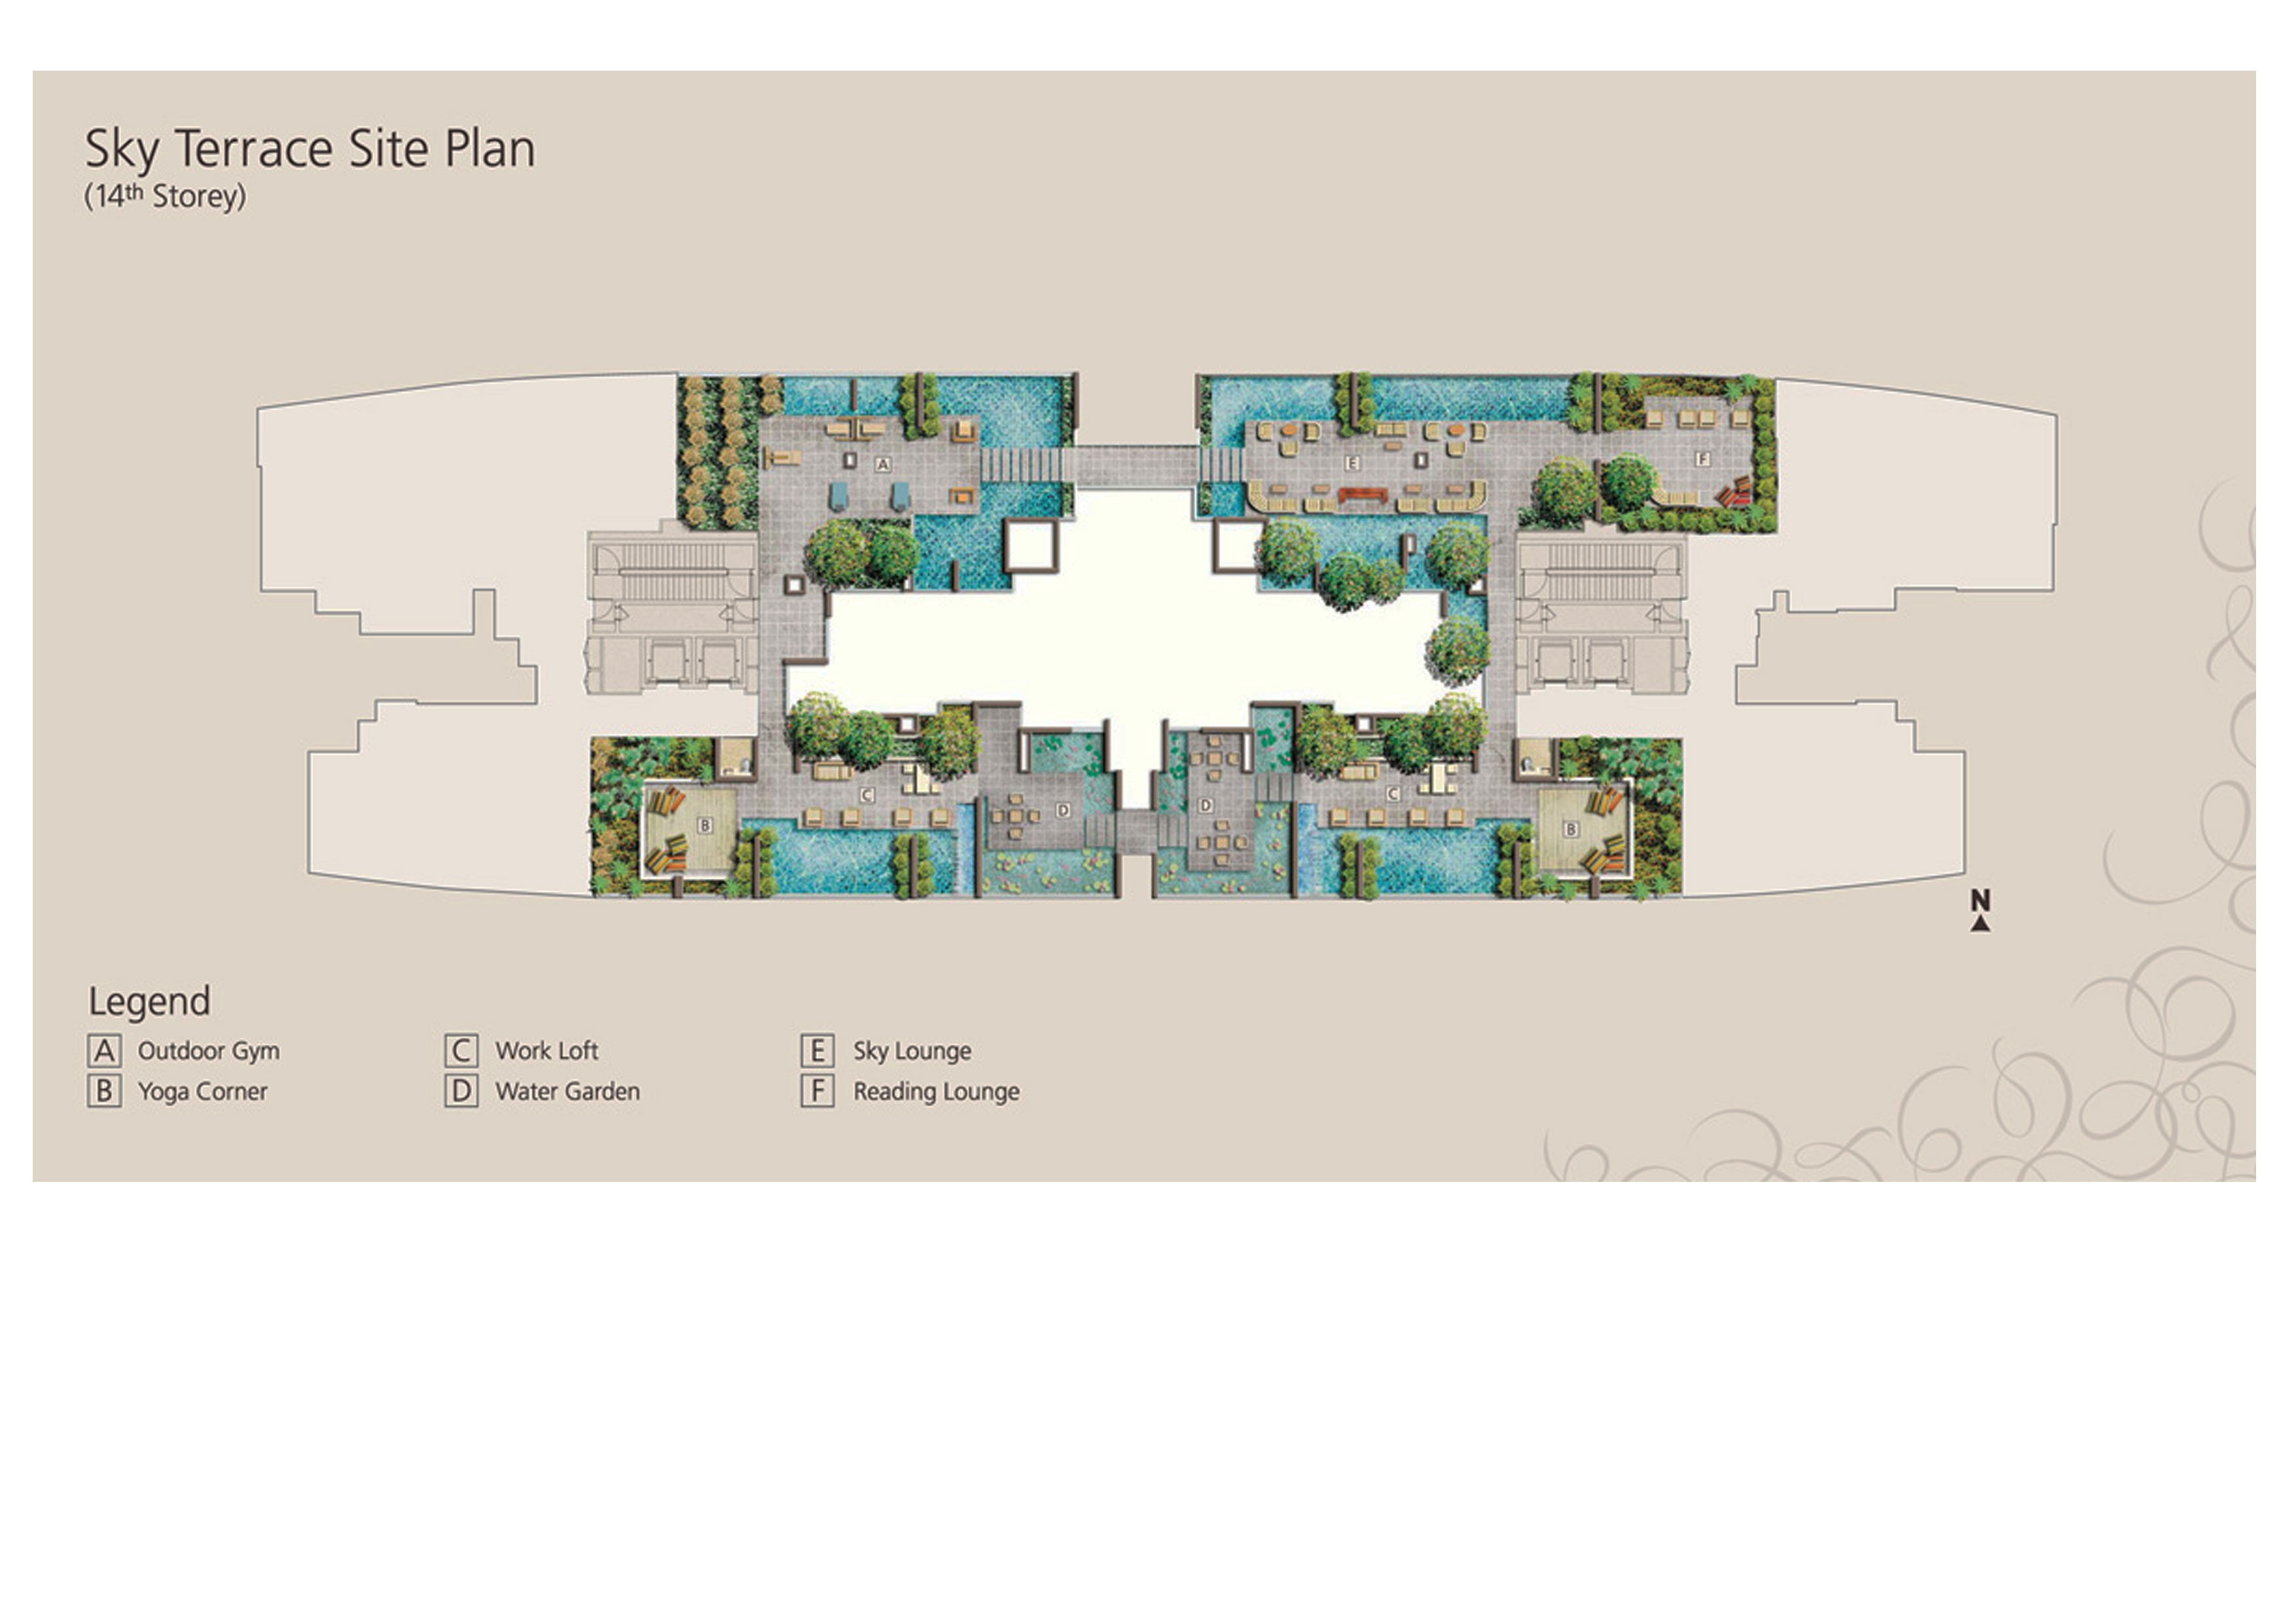 Rent For 1 Bedroom Apartment Site Plan Martin Place Residences Singapore Condo